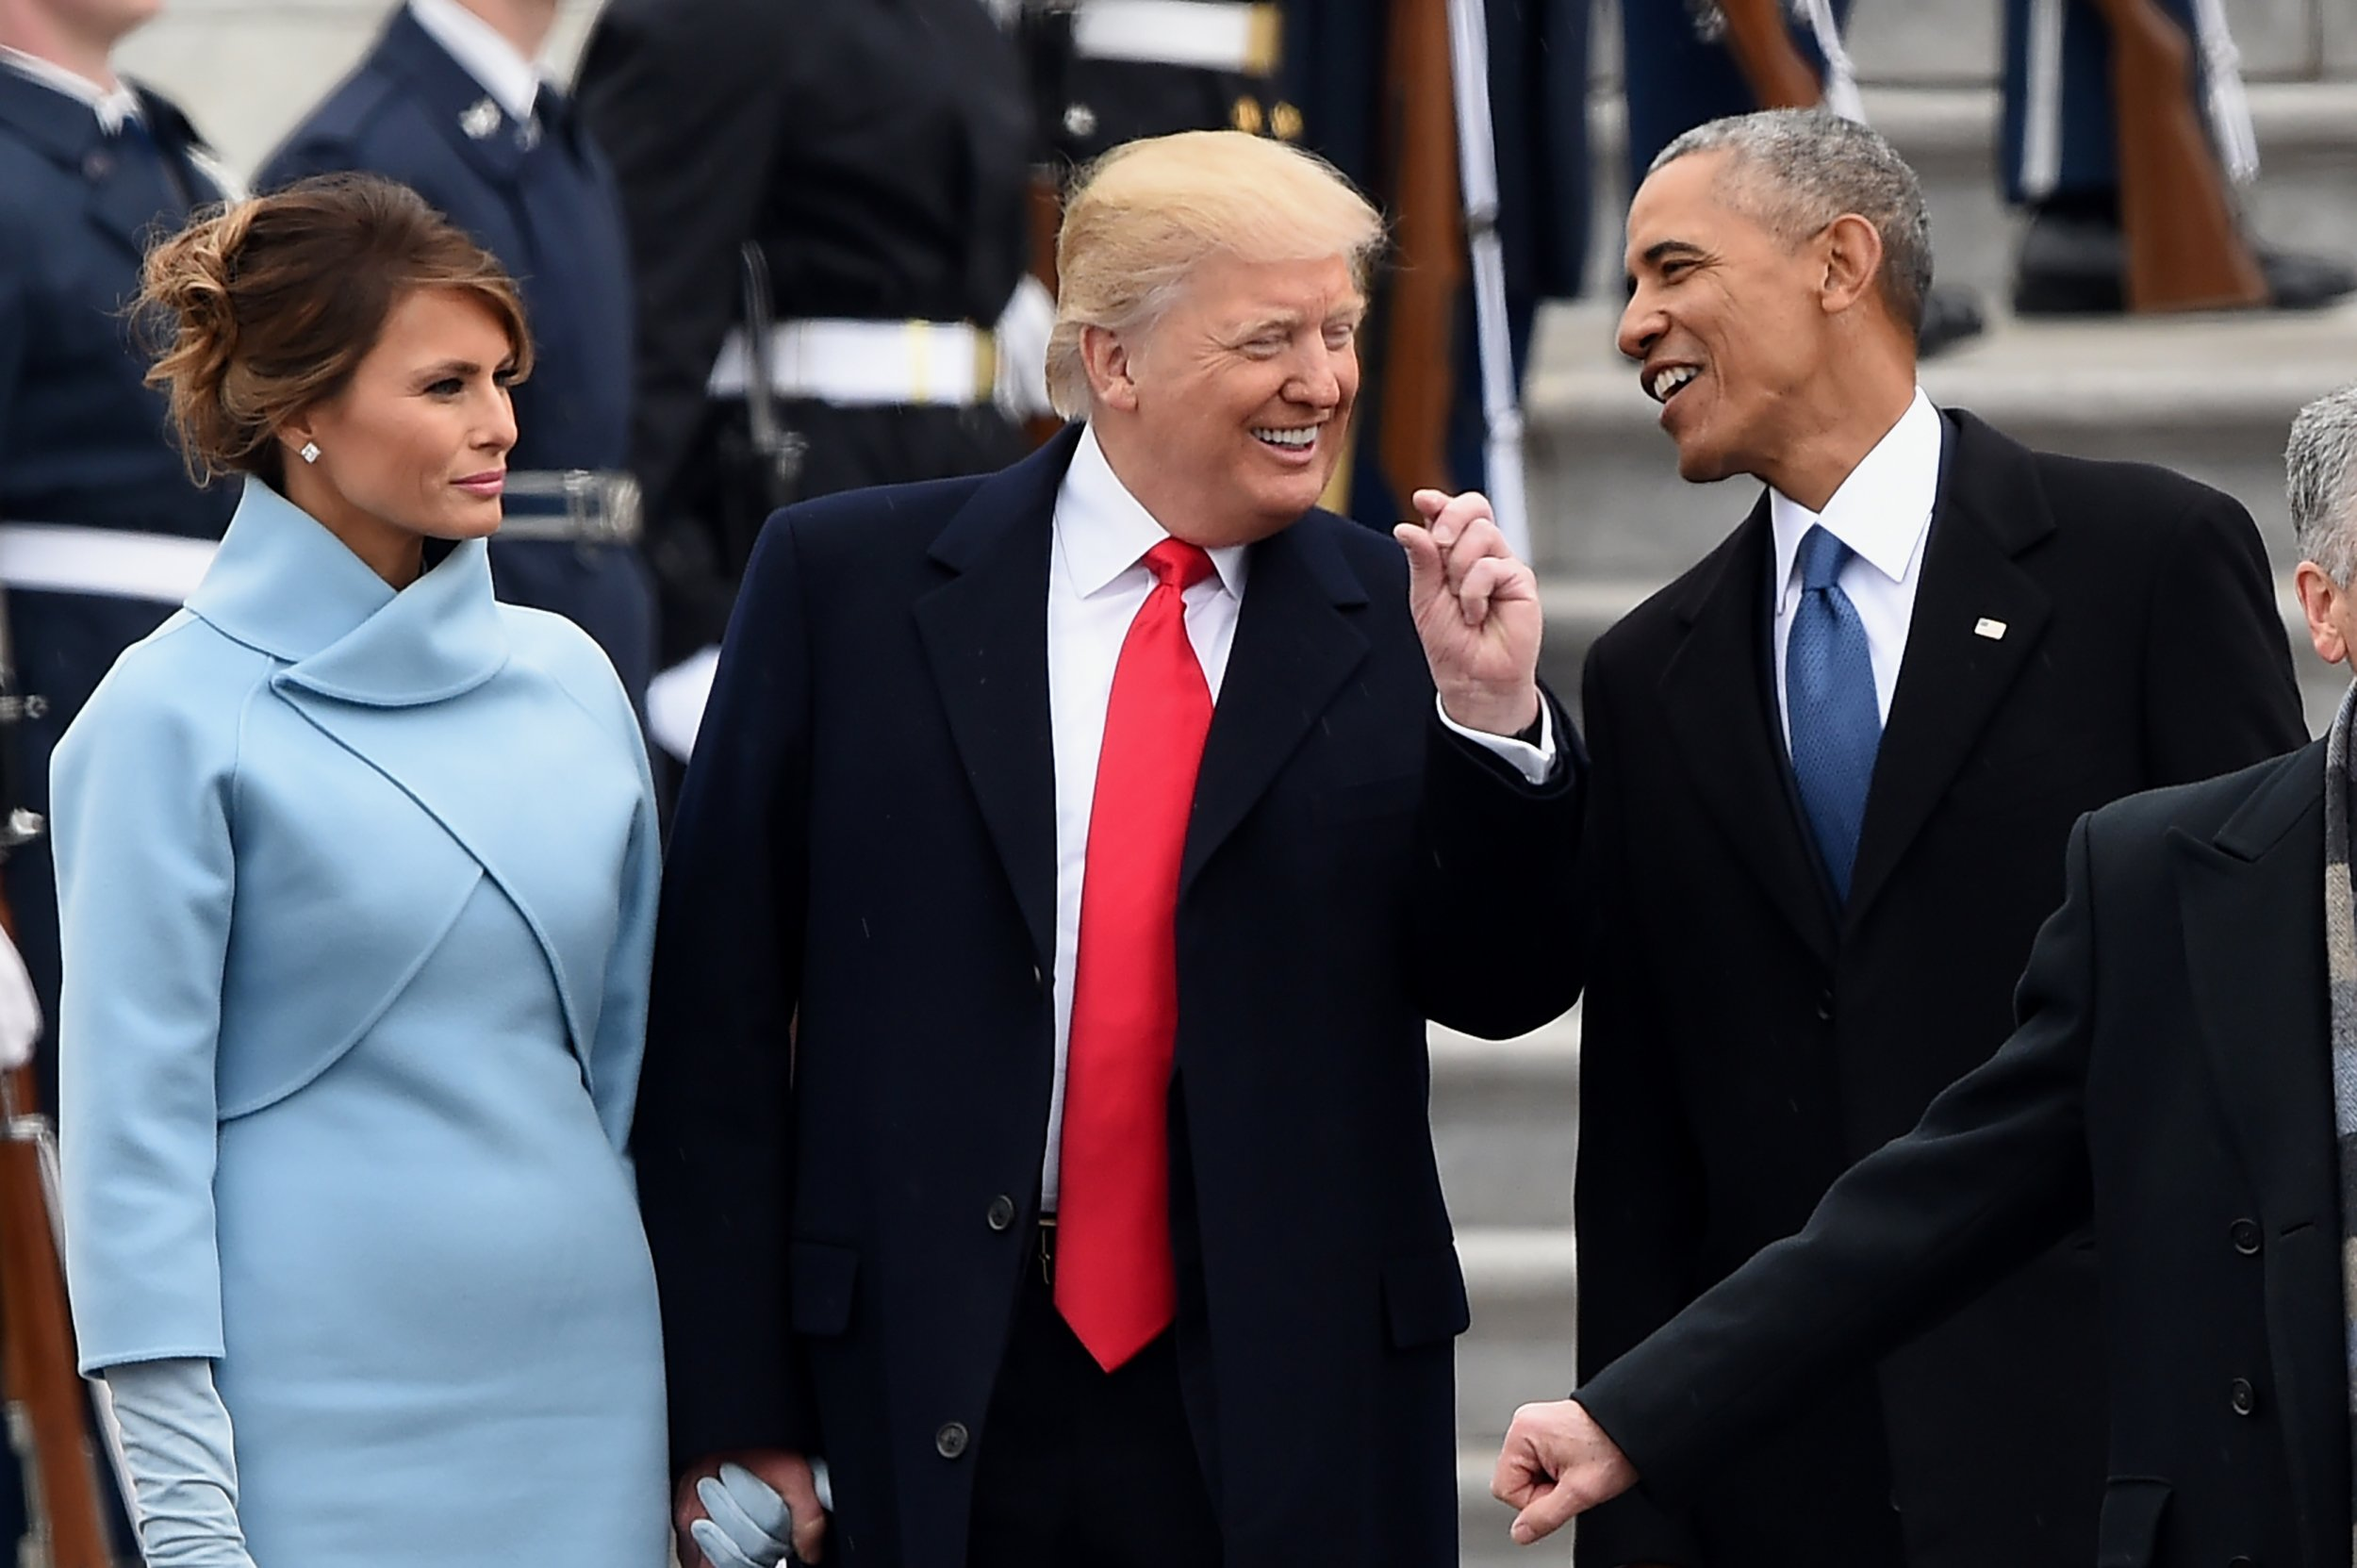 Barack Obama Porn melania trump follows her husband's least favorite person on